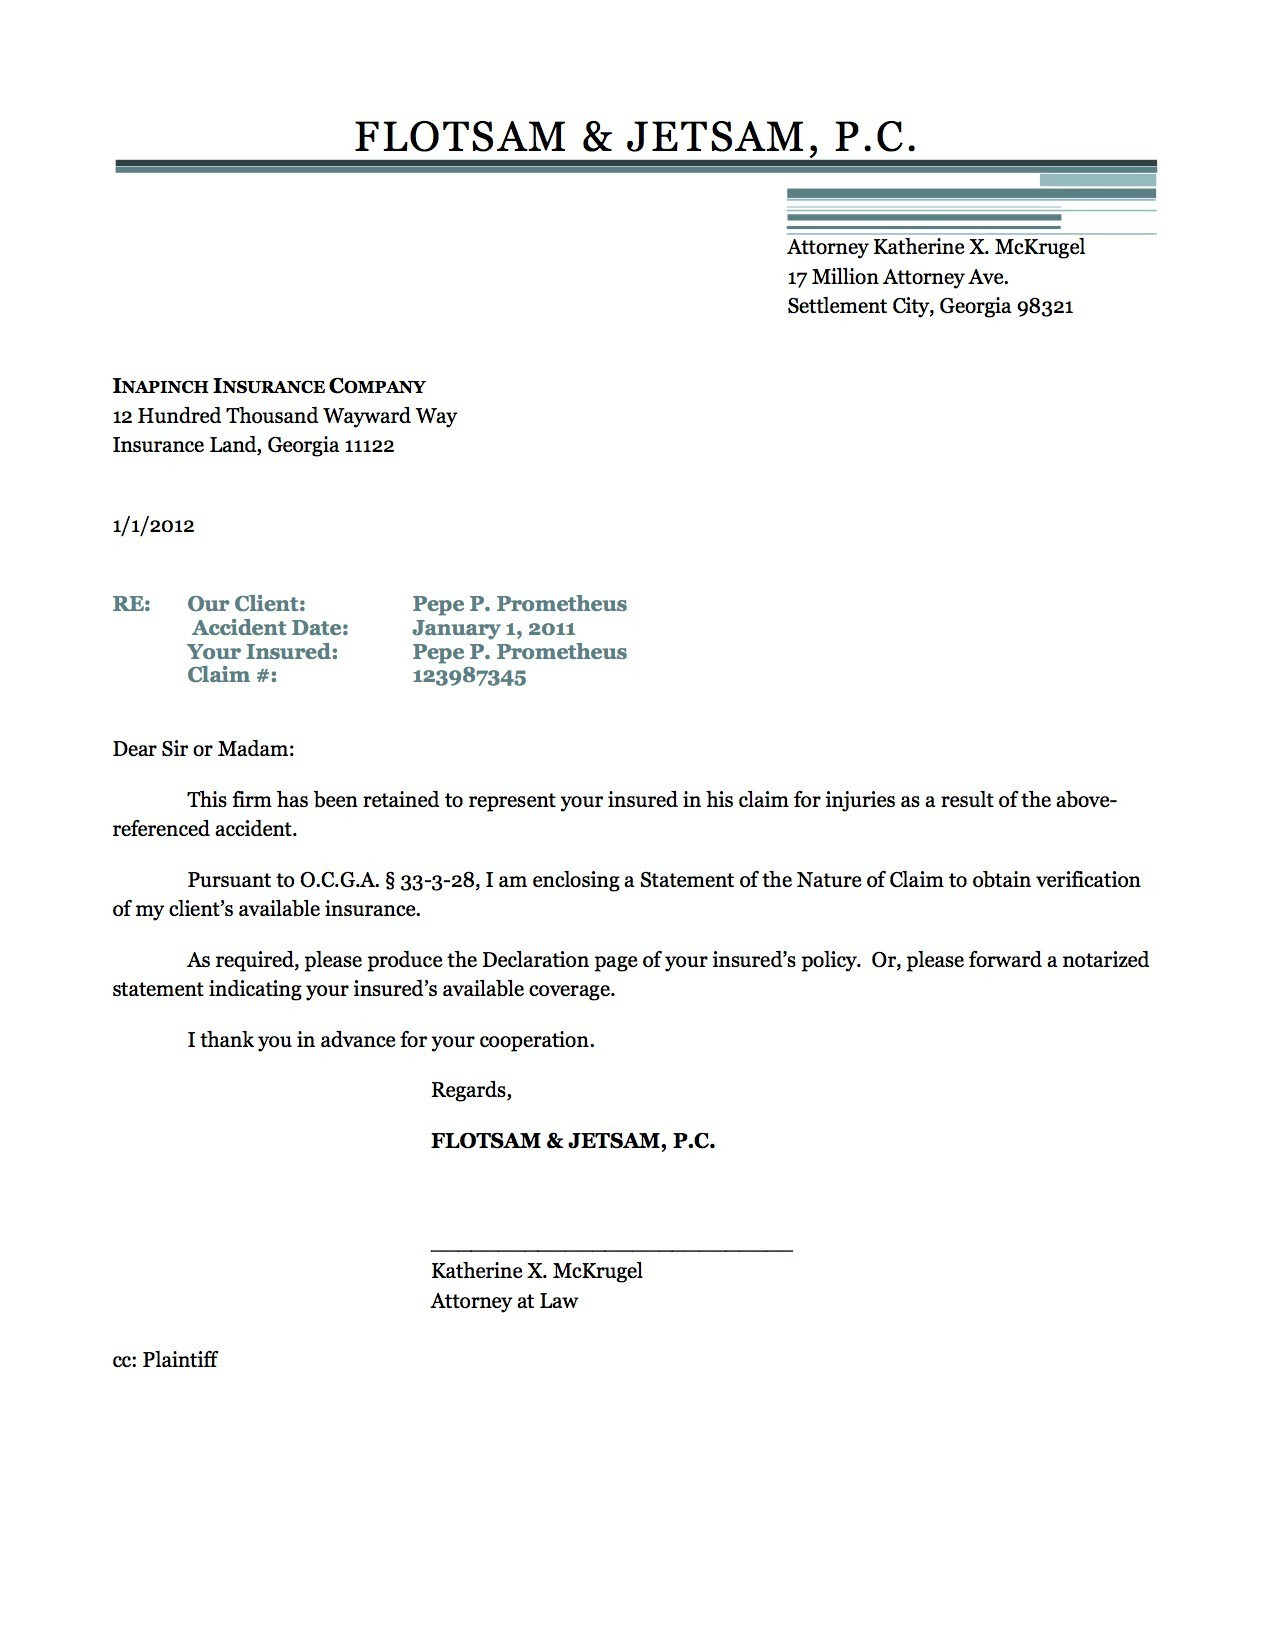 certificate of insurance request letter template example-Request Letter format for Settlement Fresh Sample Request Letter for Certificate Pliance Best Transfer 12-o